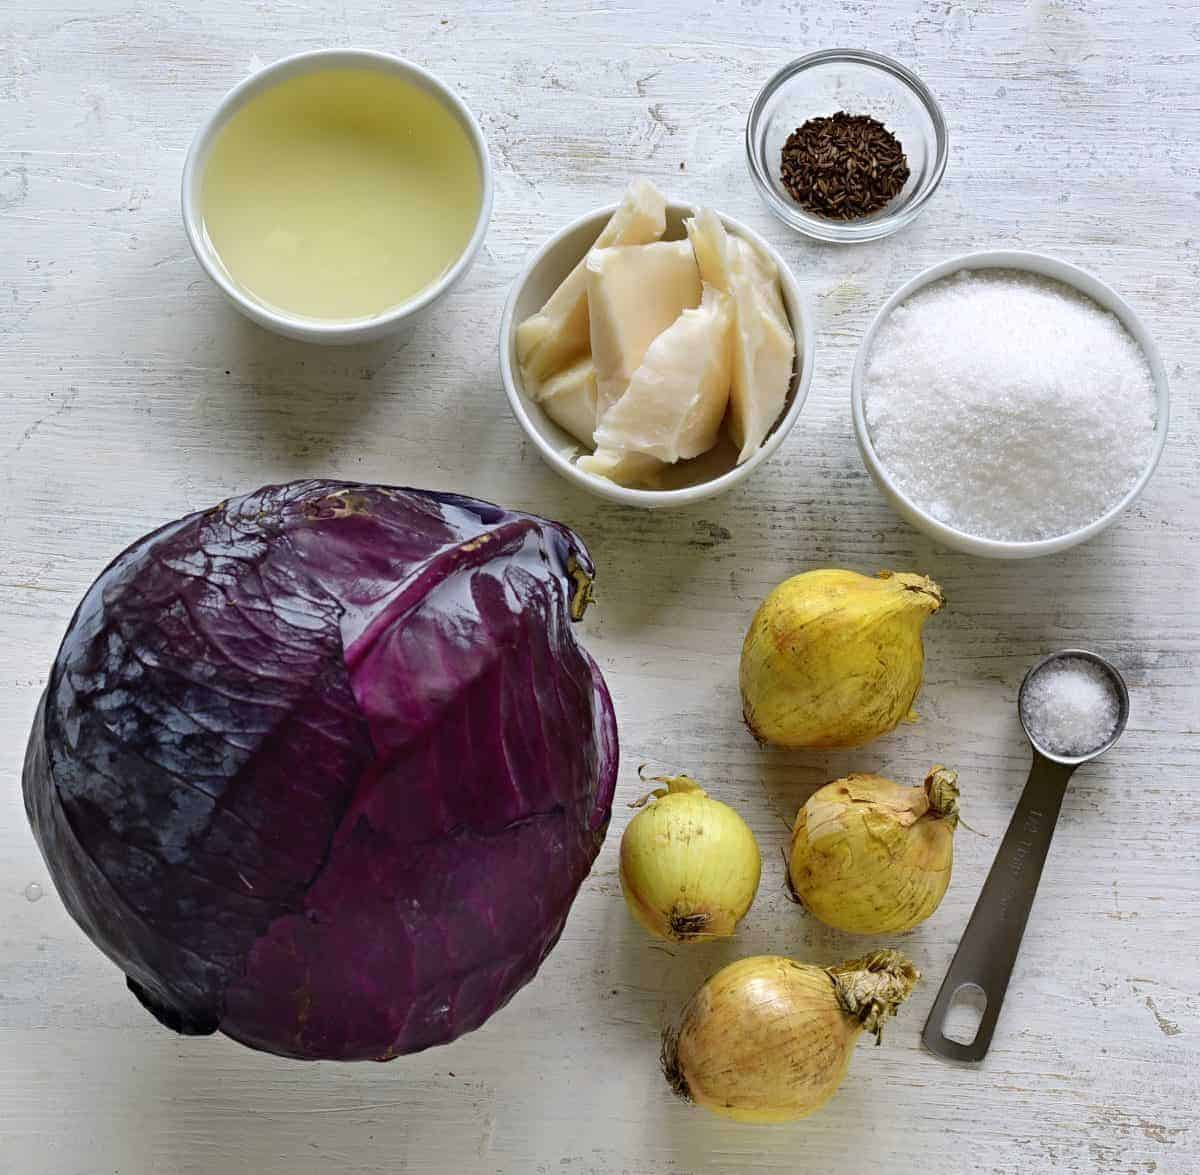 Czech braised red cabbage indgredients